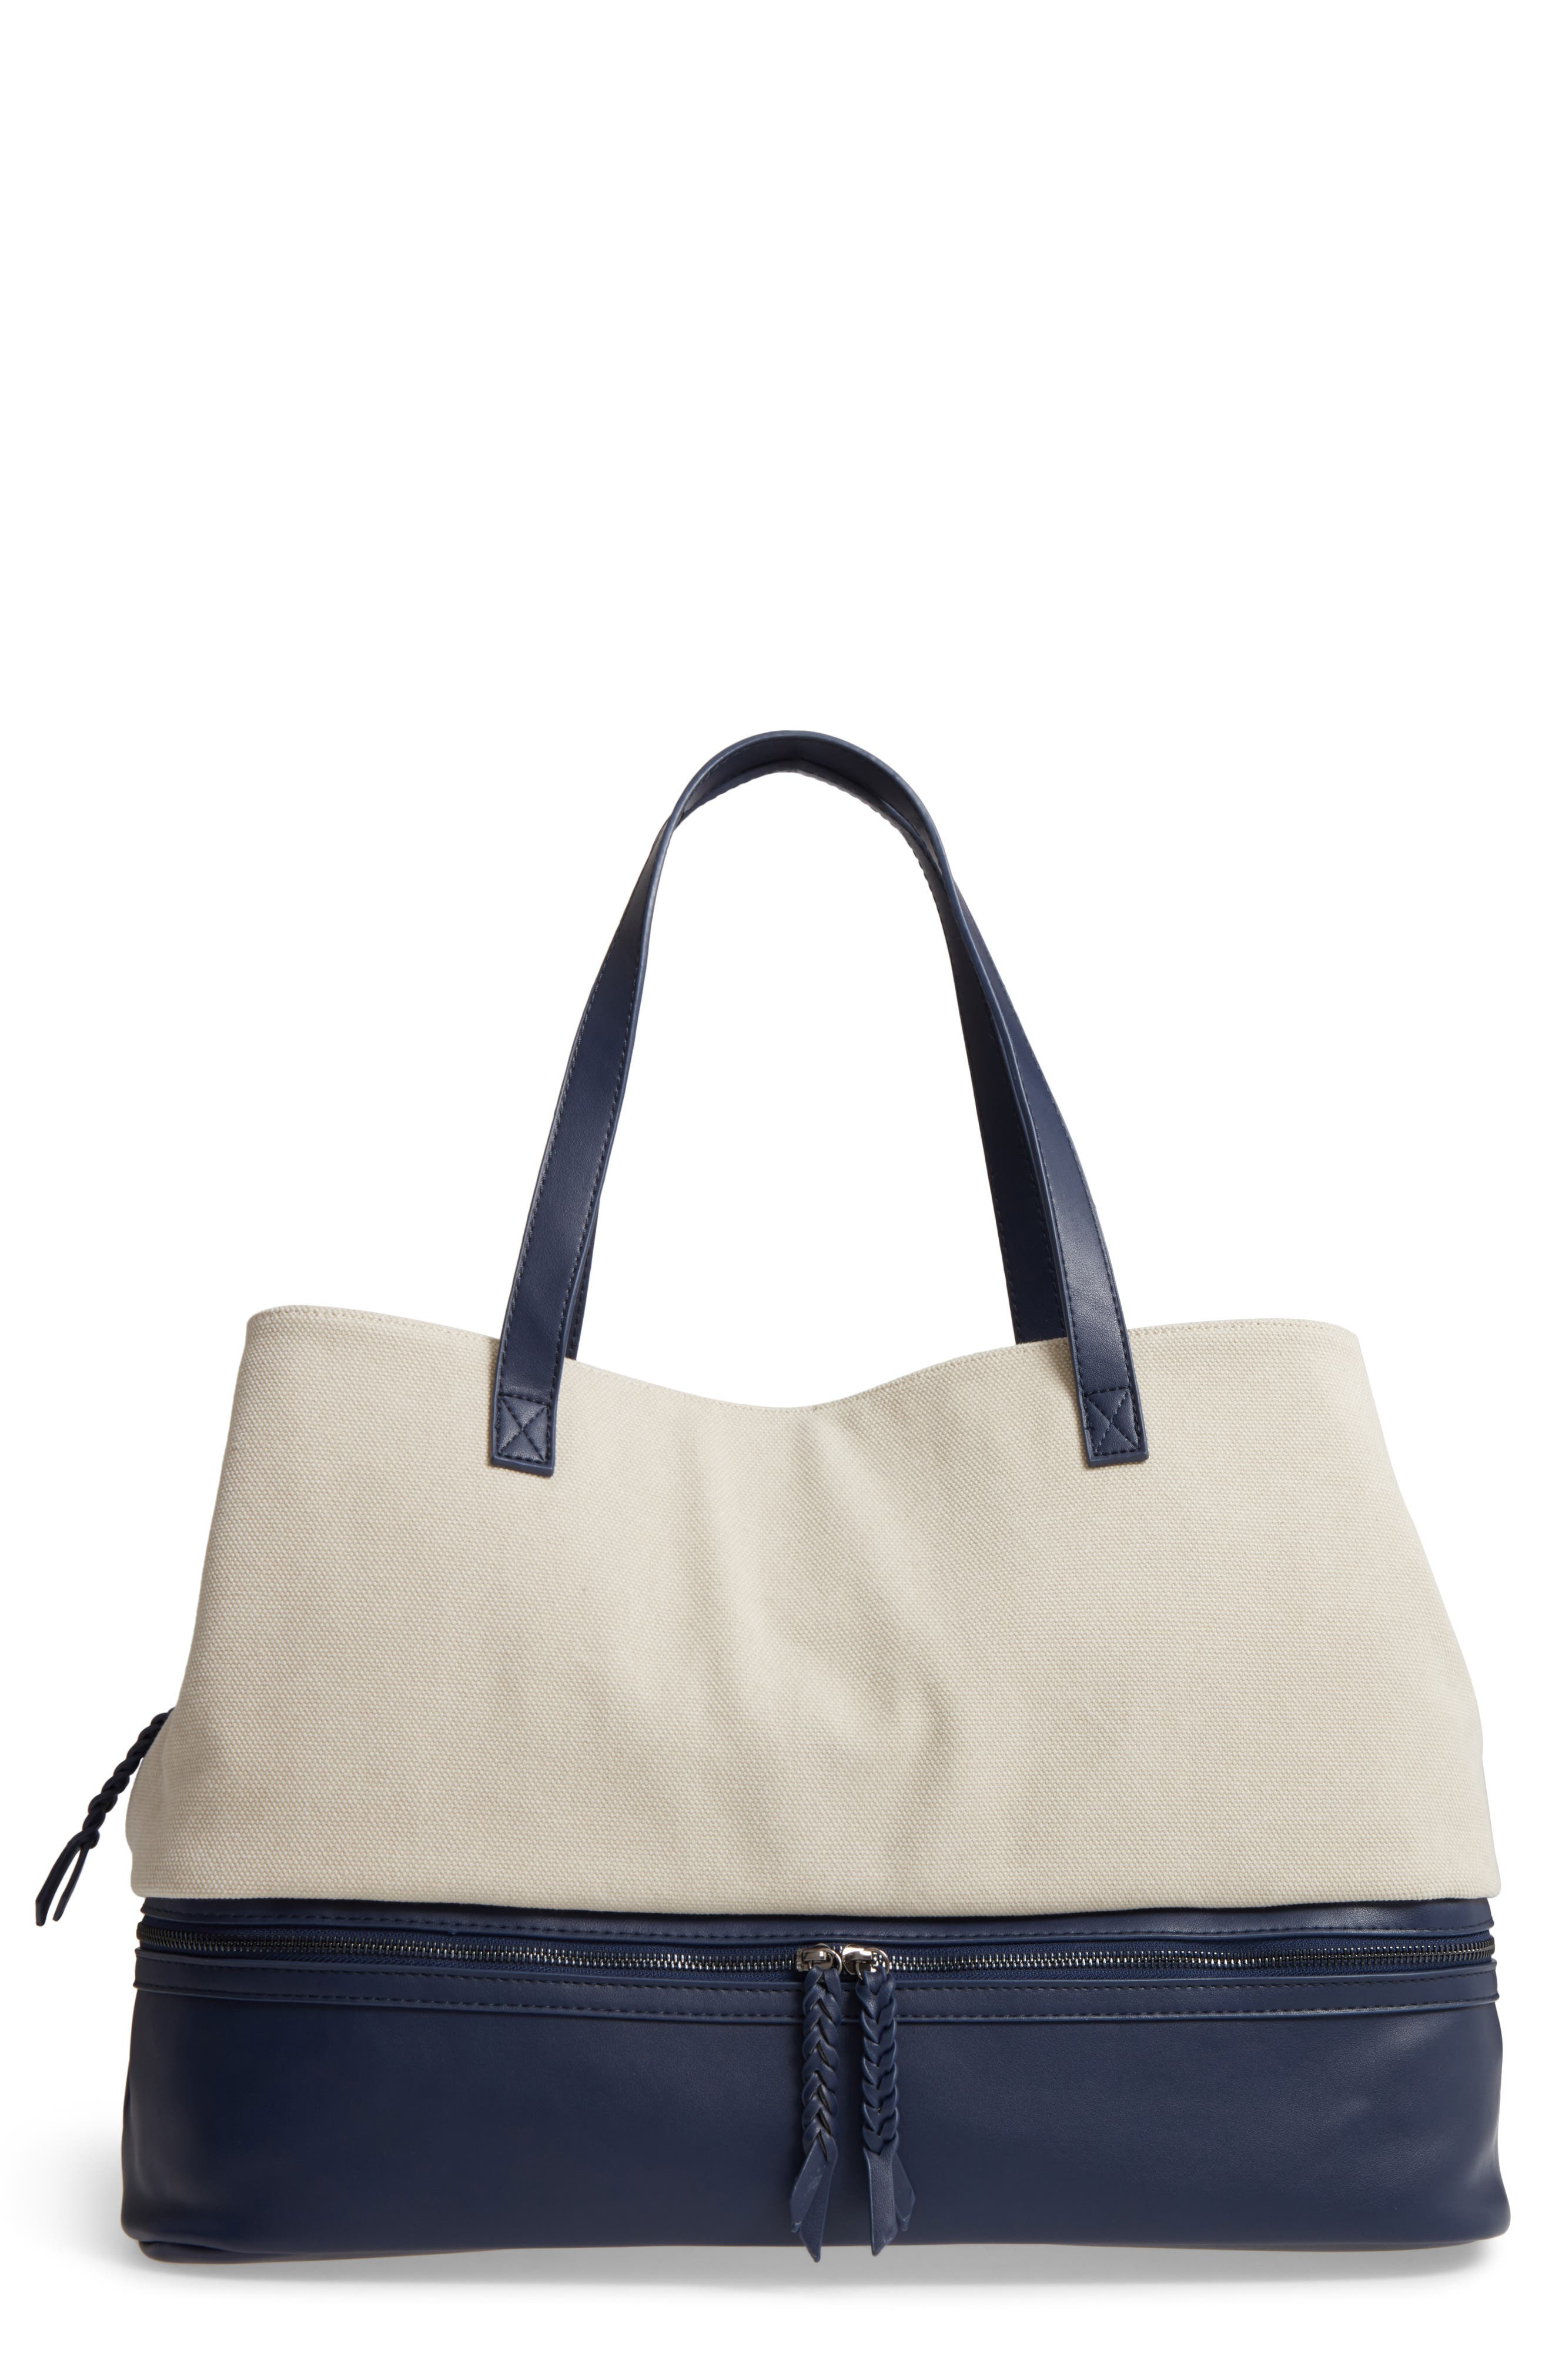 Two Toned Weekender Bag,                         Main,                         color, Cream/ Navy